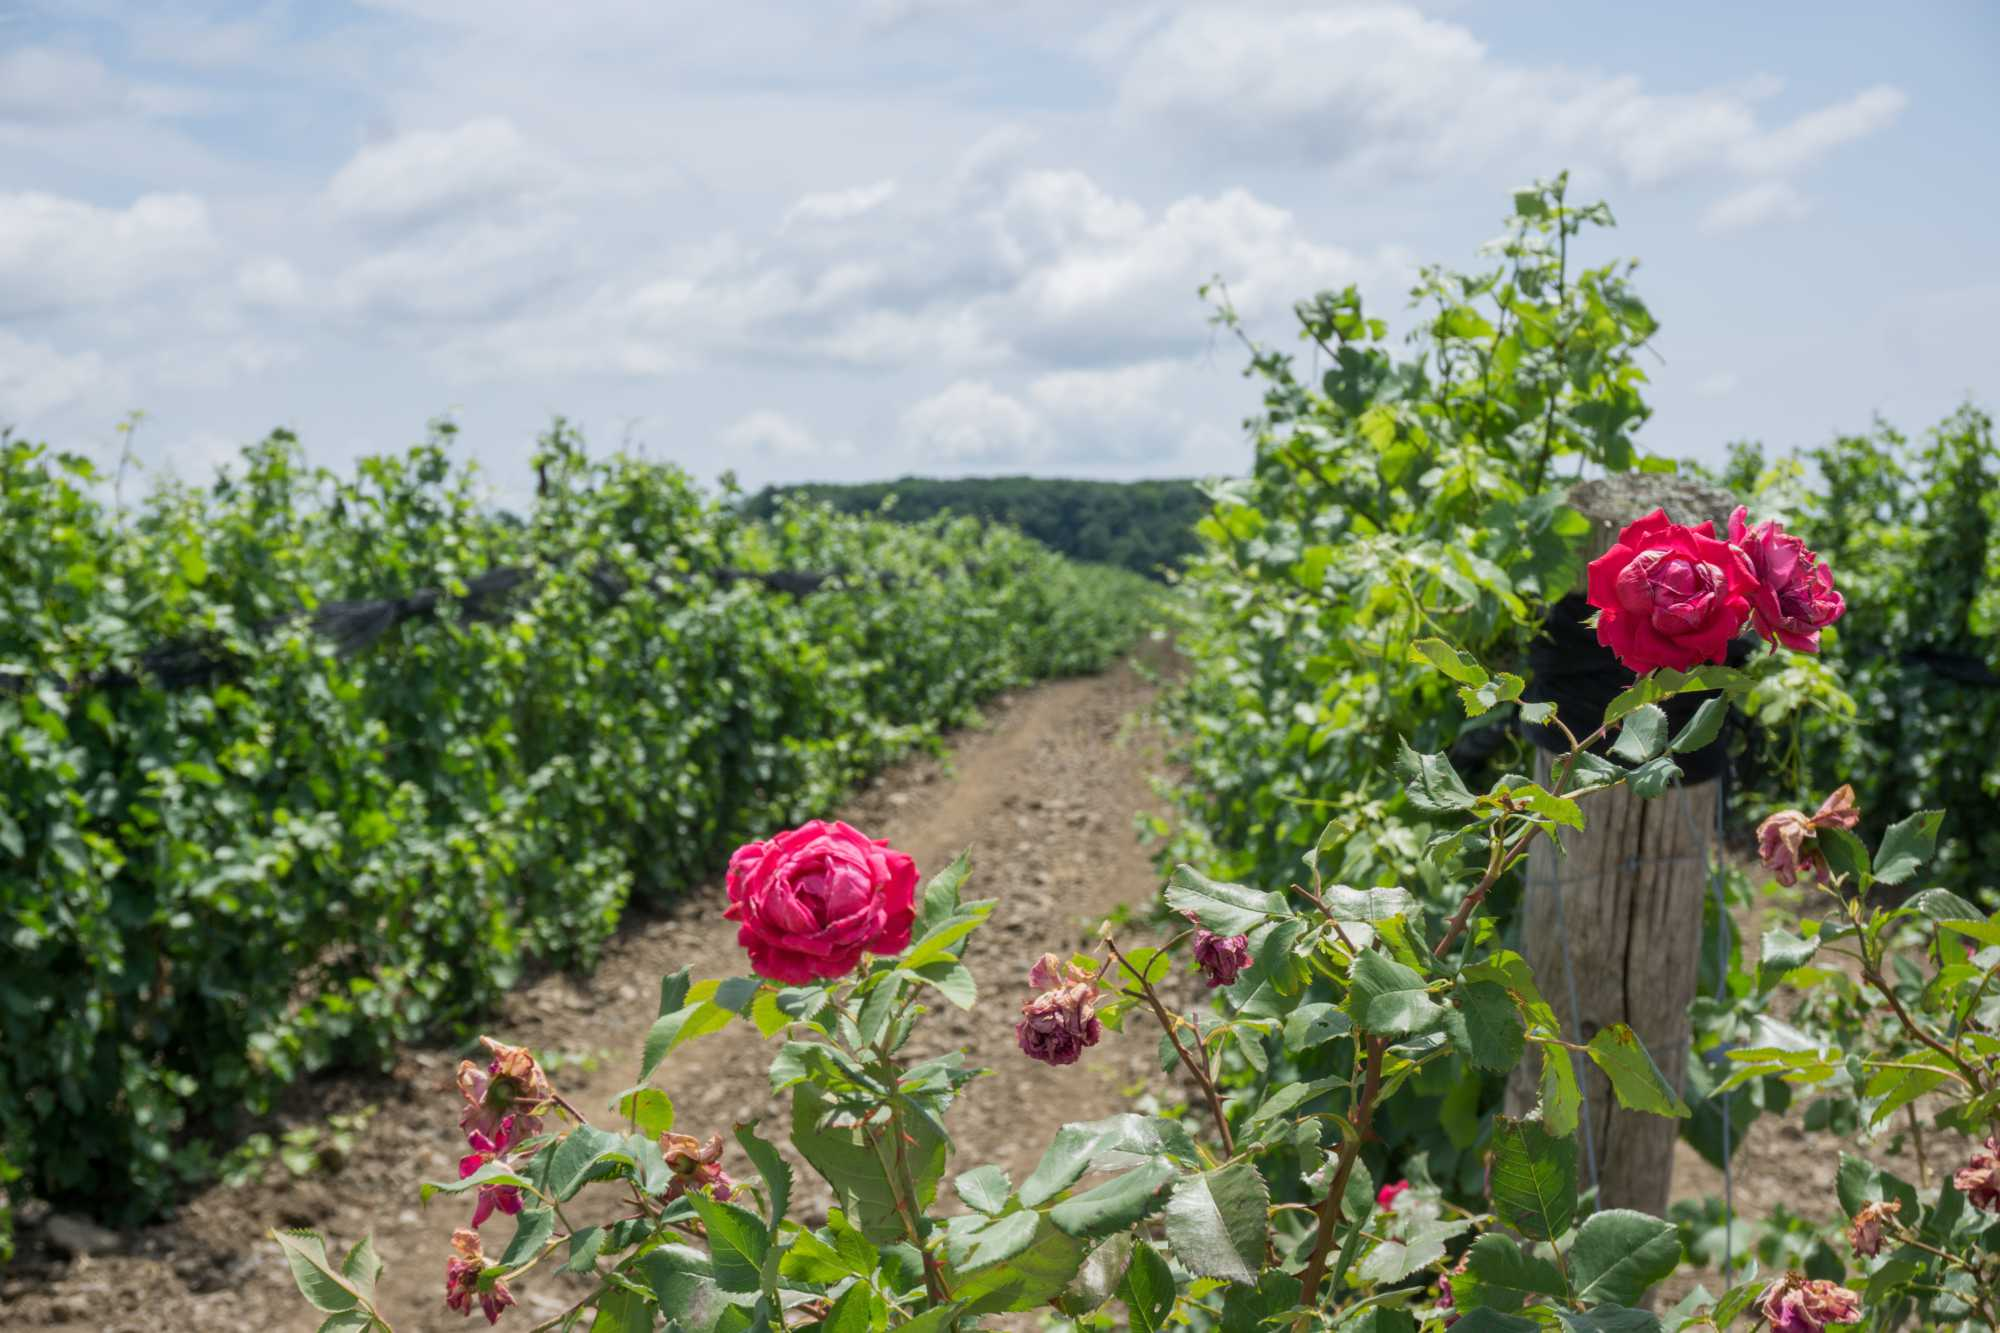 Roses in a vineyard in Prince Edward County